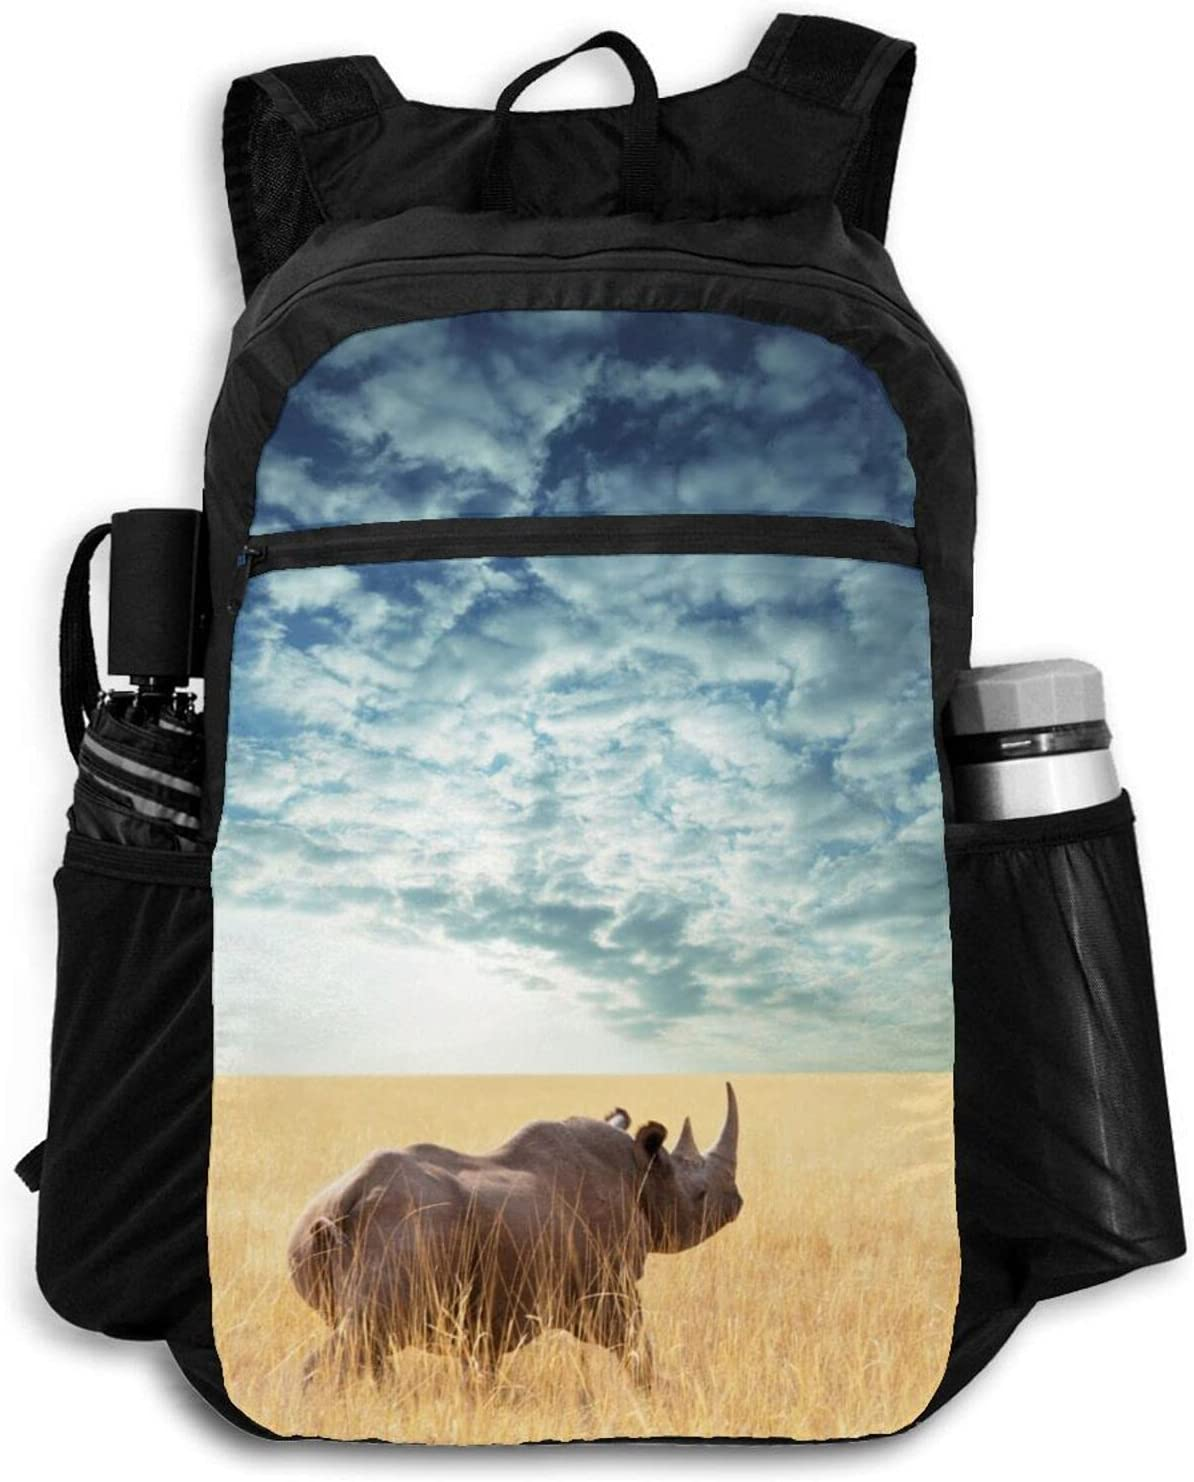 Zolama Ranking TOP2 Rhino Rhinoceros Backpacks for Men Cute Packable Da Inventory cleanup selling sale Women